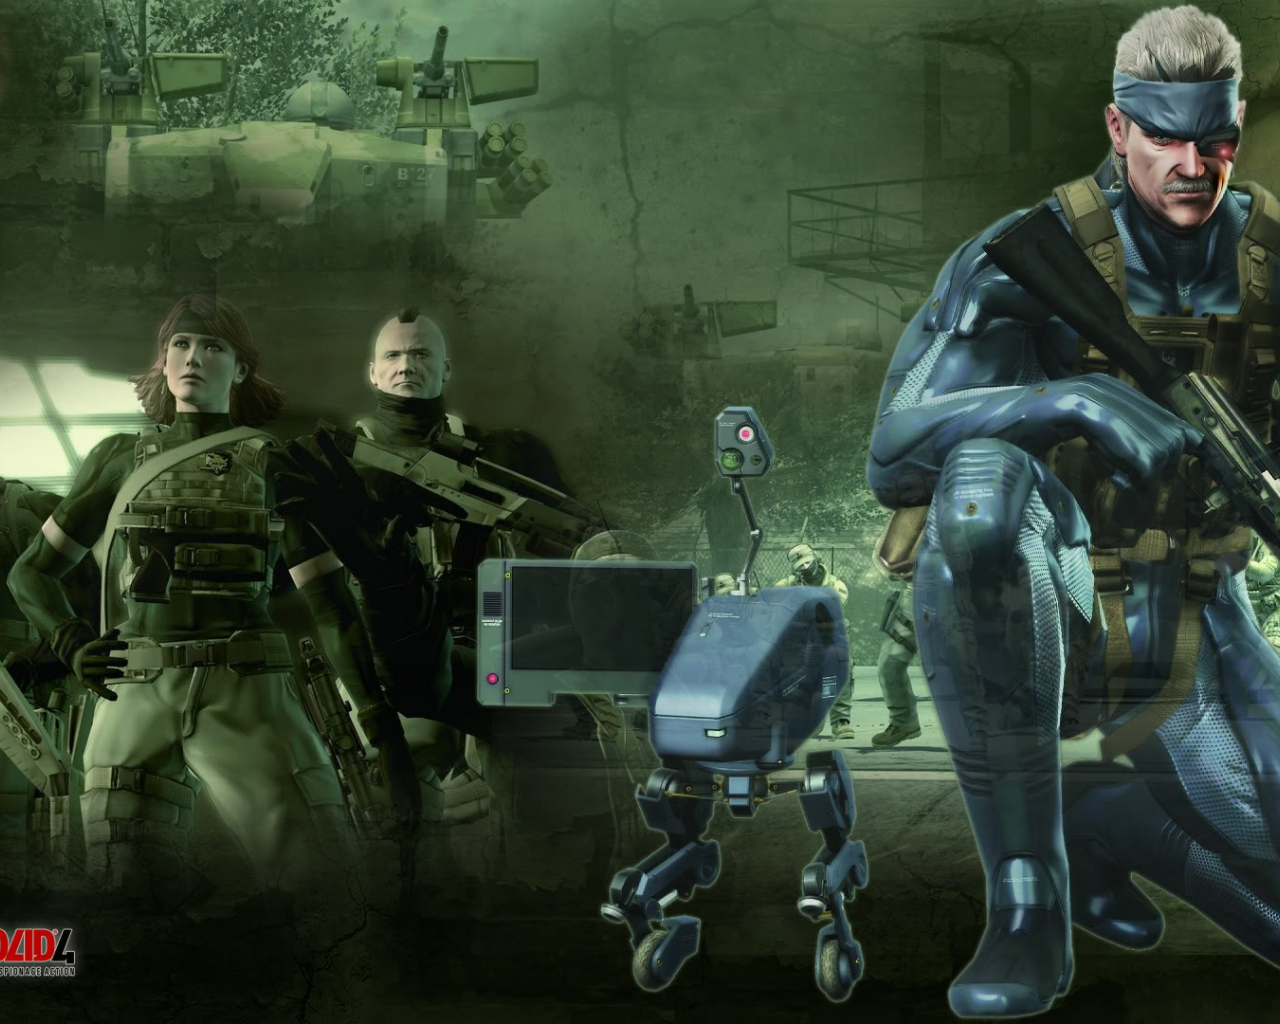 Free Download Metal Gear Solid 4 Wallpaper Metal Gear Solid 4